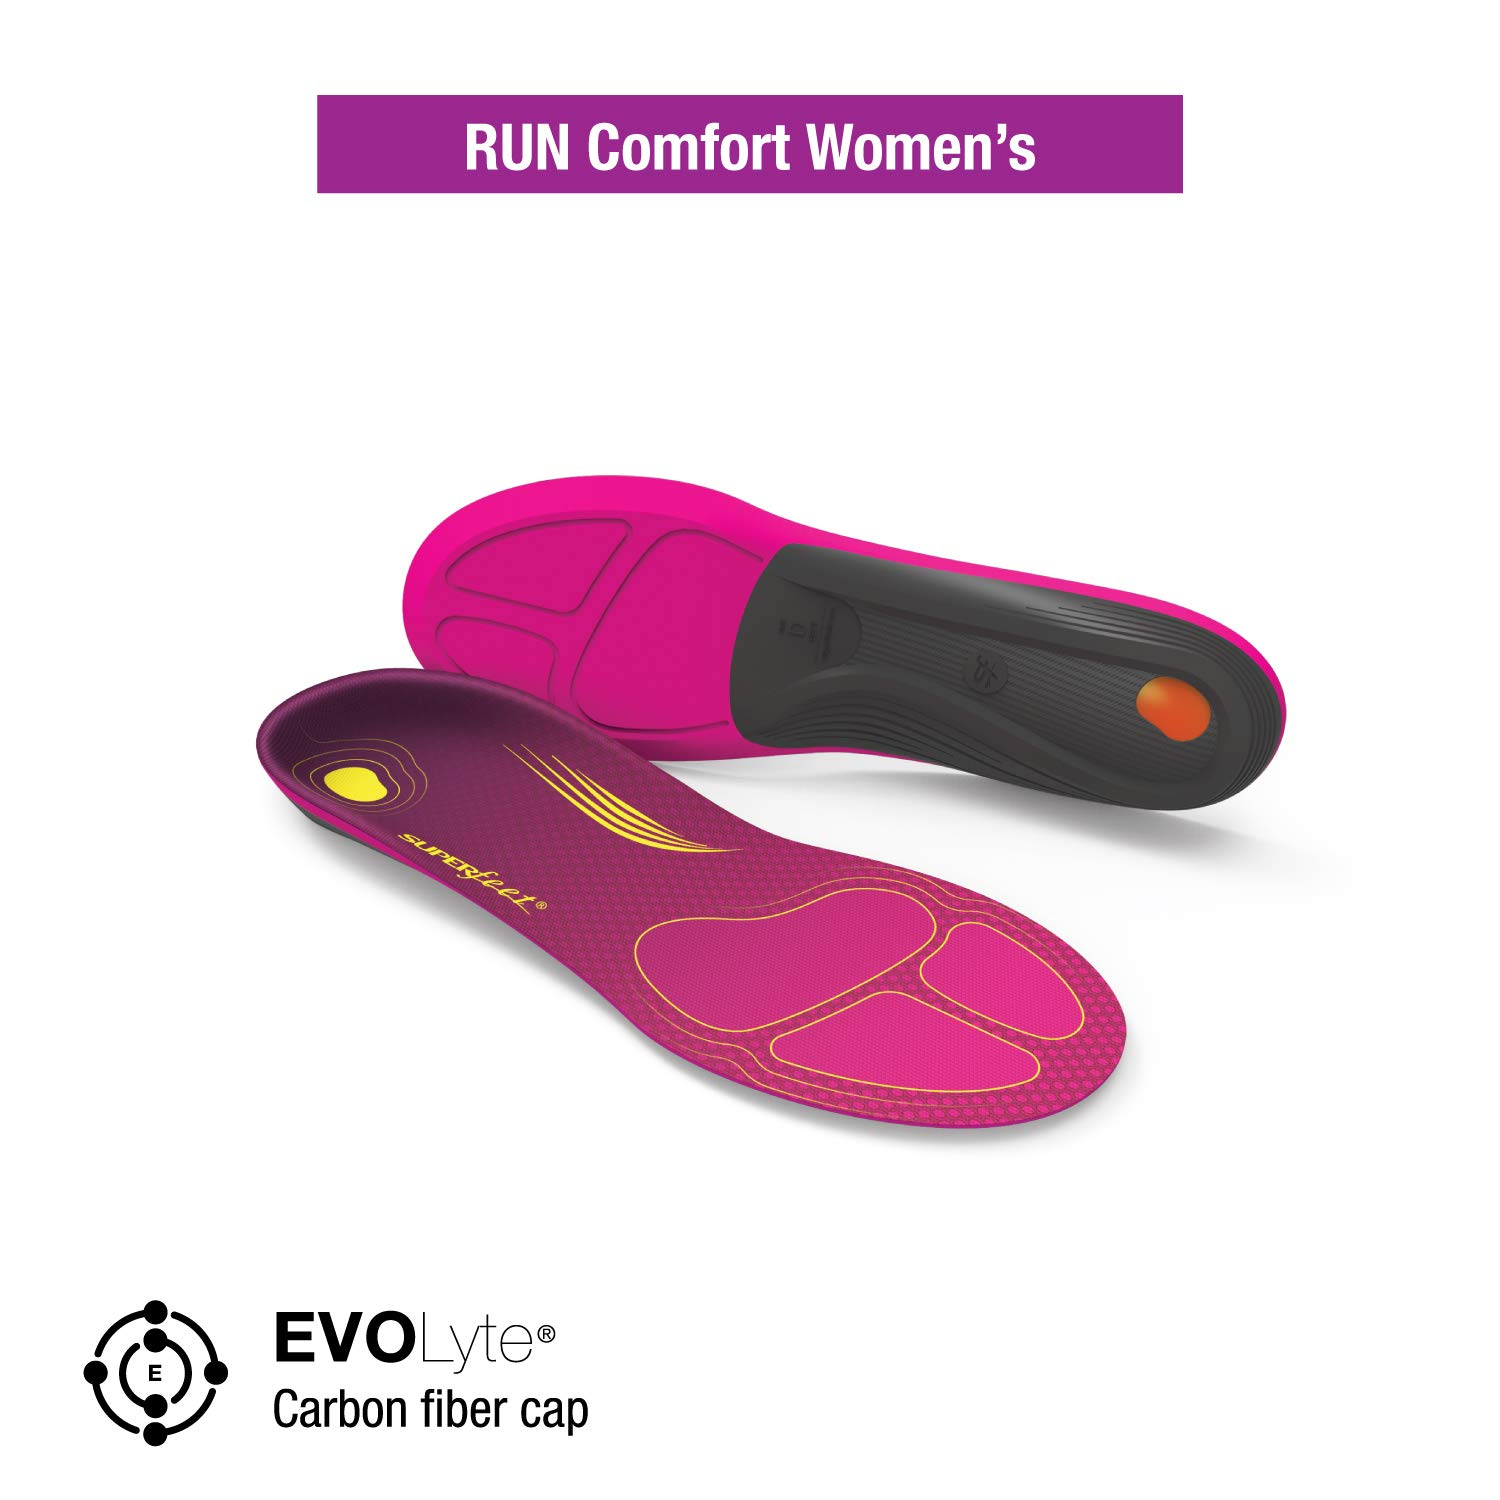 Superfeet Women's RUN Comfort Insoles Carbon Fiber Running Shoe Orthotic Inserts for Support and Cushion, Plum, Medium/D: 8.5-10 US Womens by Superfeet (Image #2)